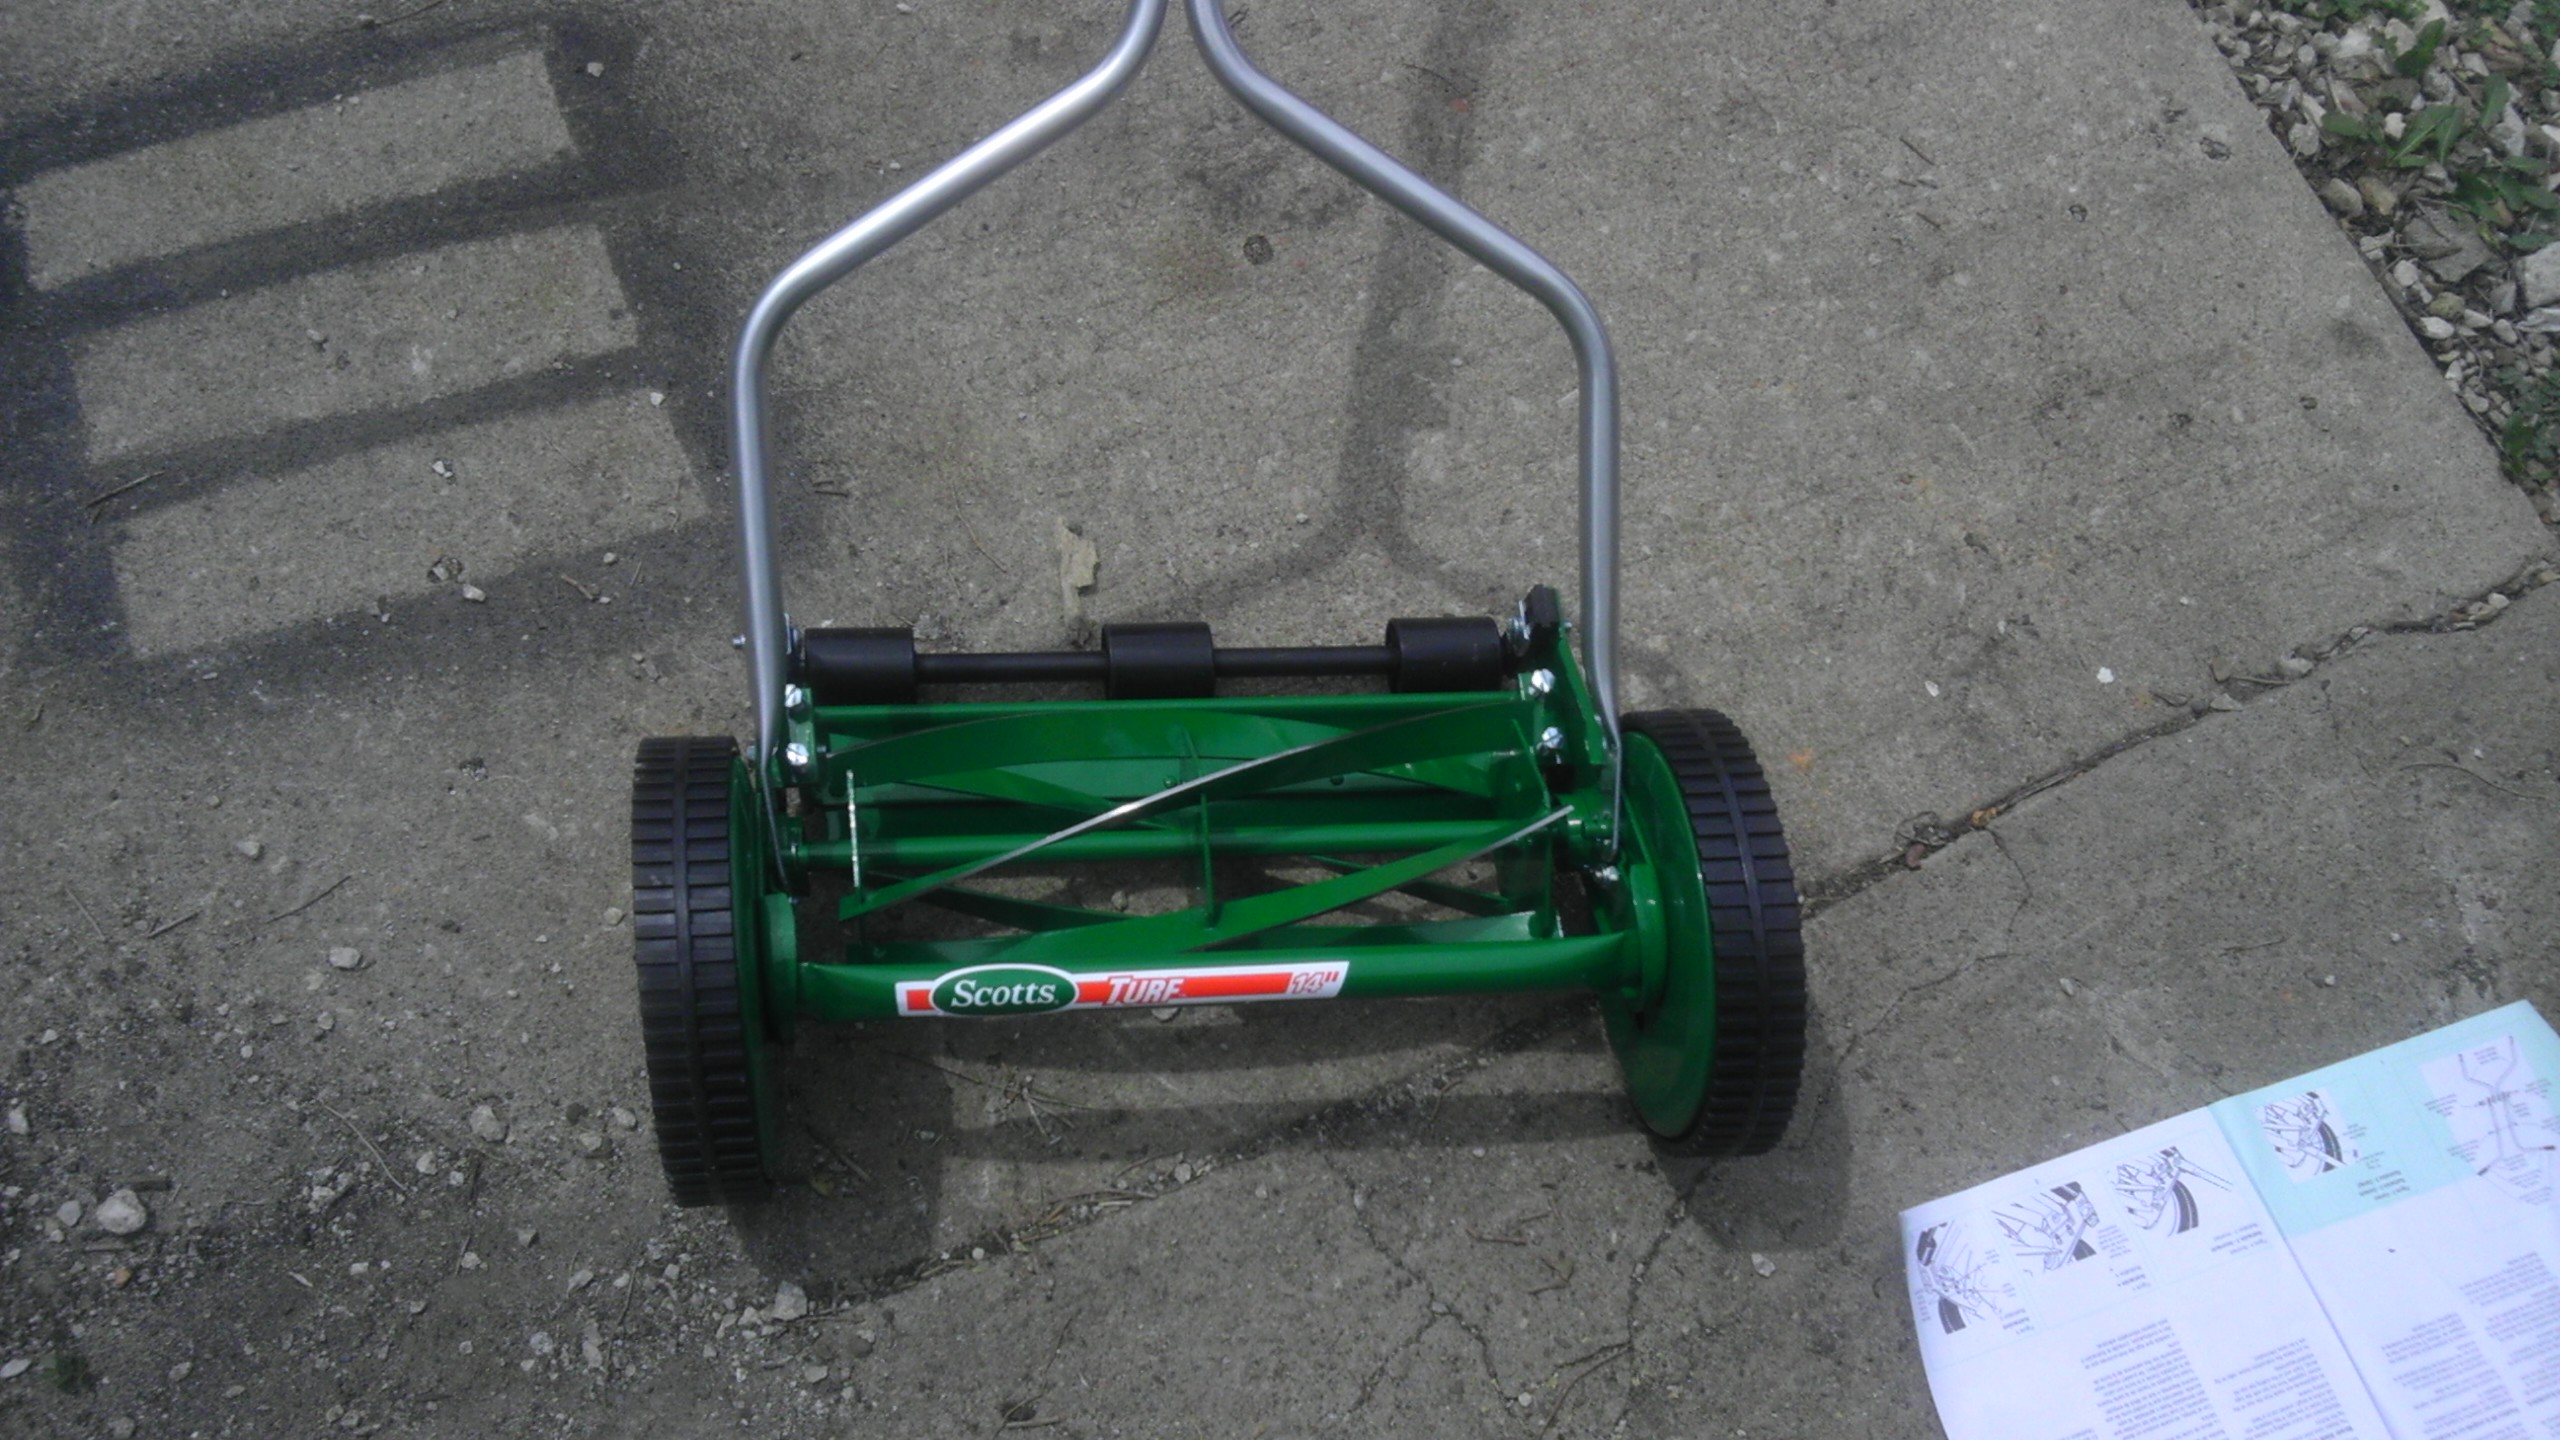 Affordable Home Depot Seen Fit To Put Se On Who Hell Is Crazy Enough To Purchase This Scotts Reel Mower Review Experiments Anachronism Scotts Reel Mower Manual Scotts Reel Mower 14 Inch houzz-02 Scotts Reel Mower